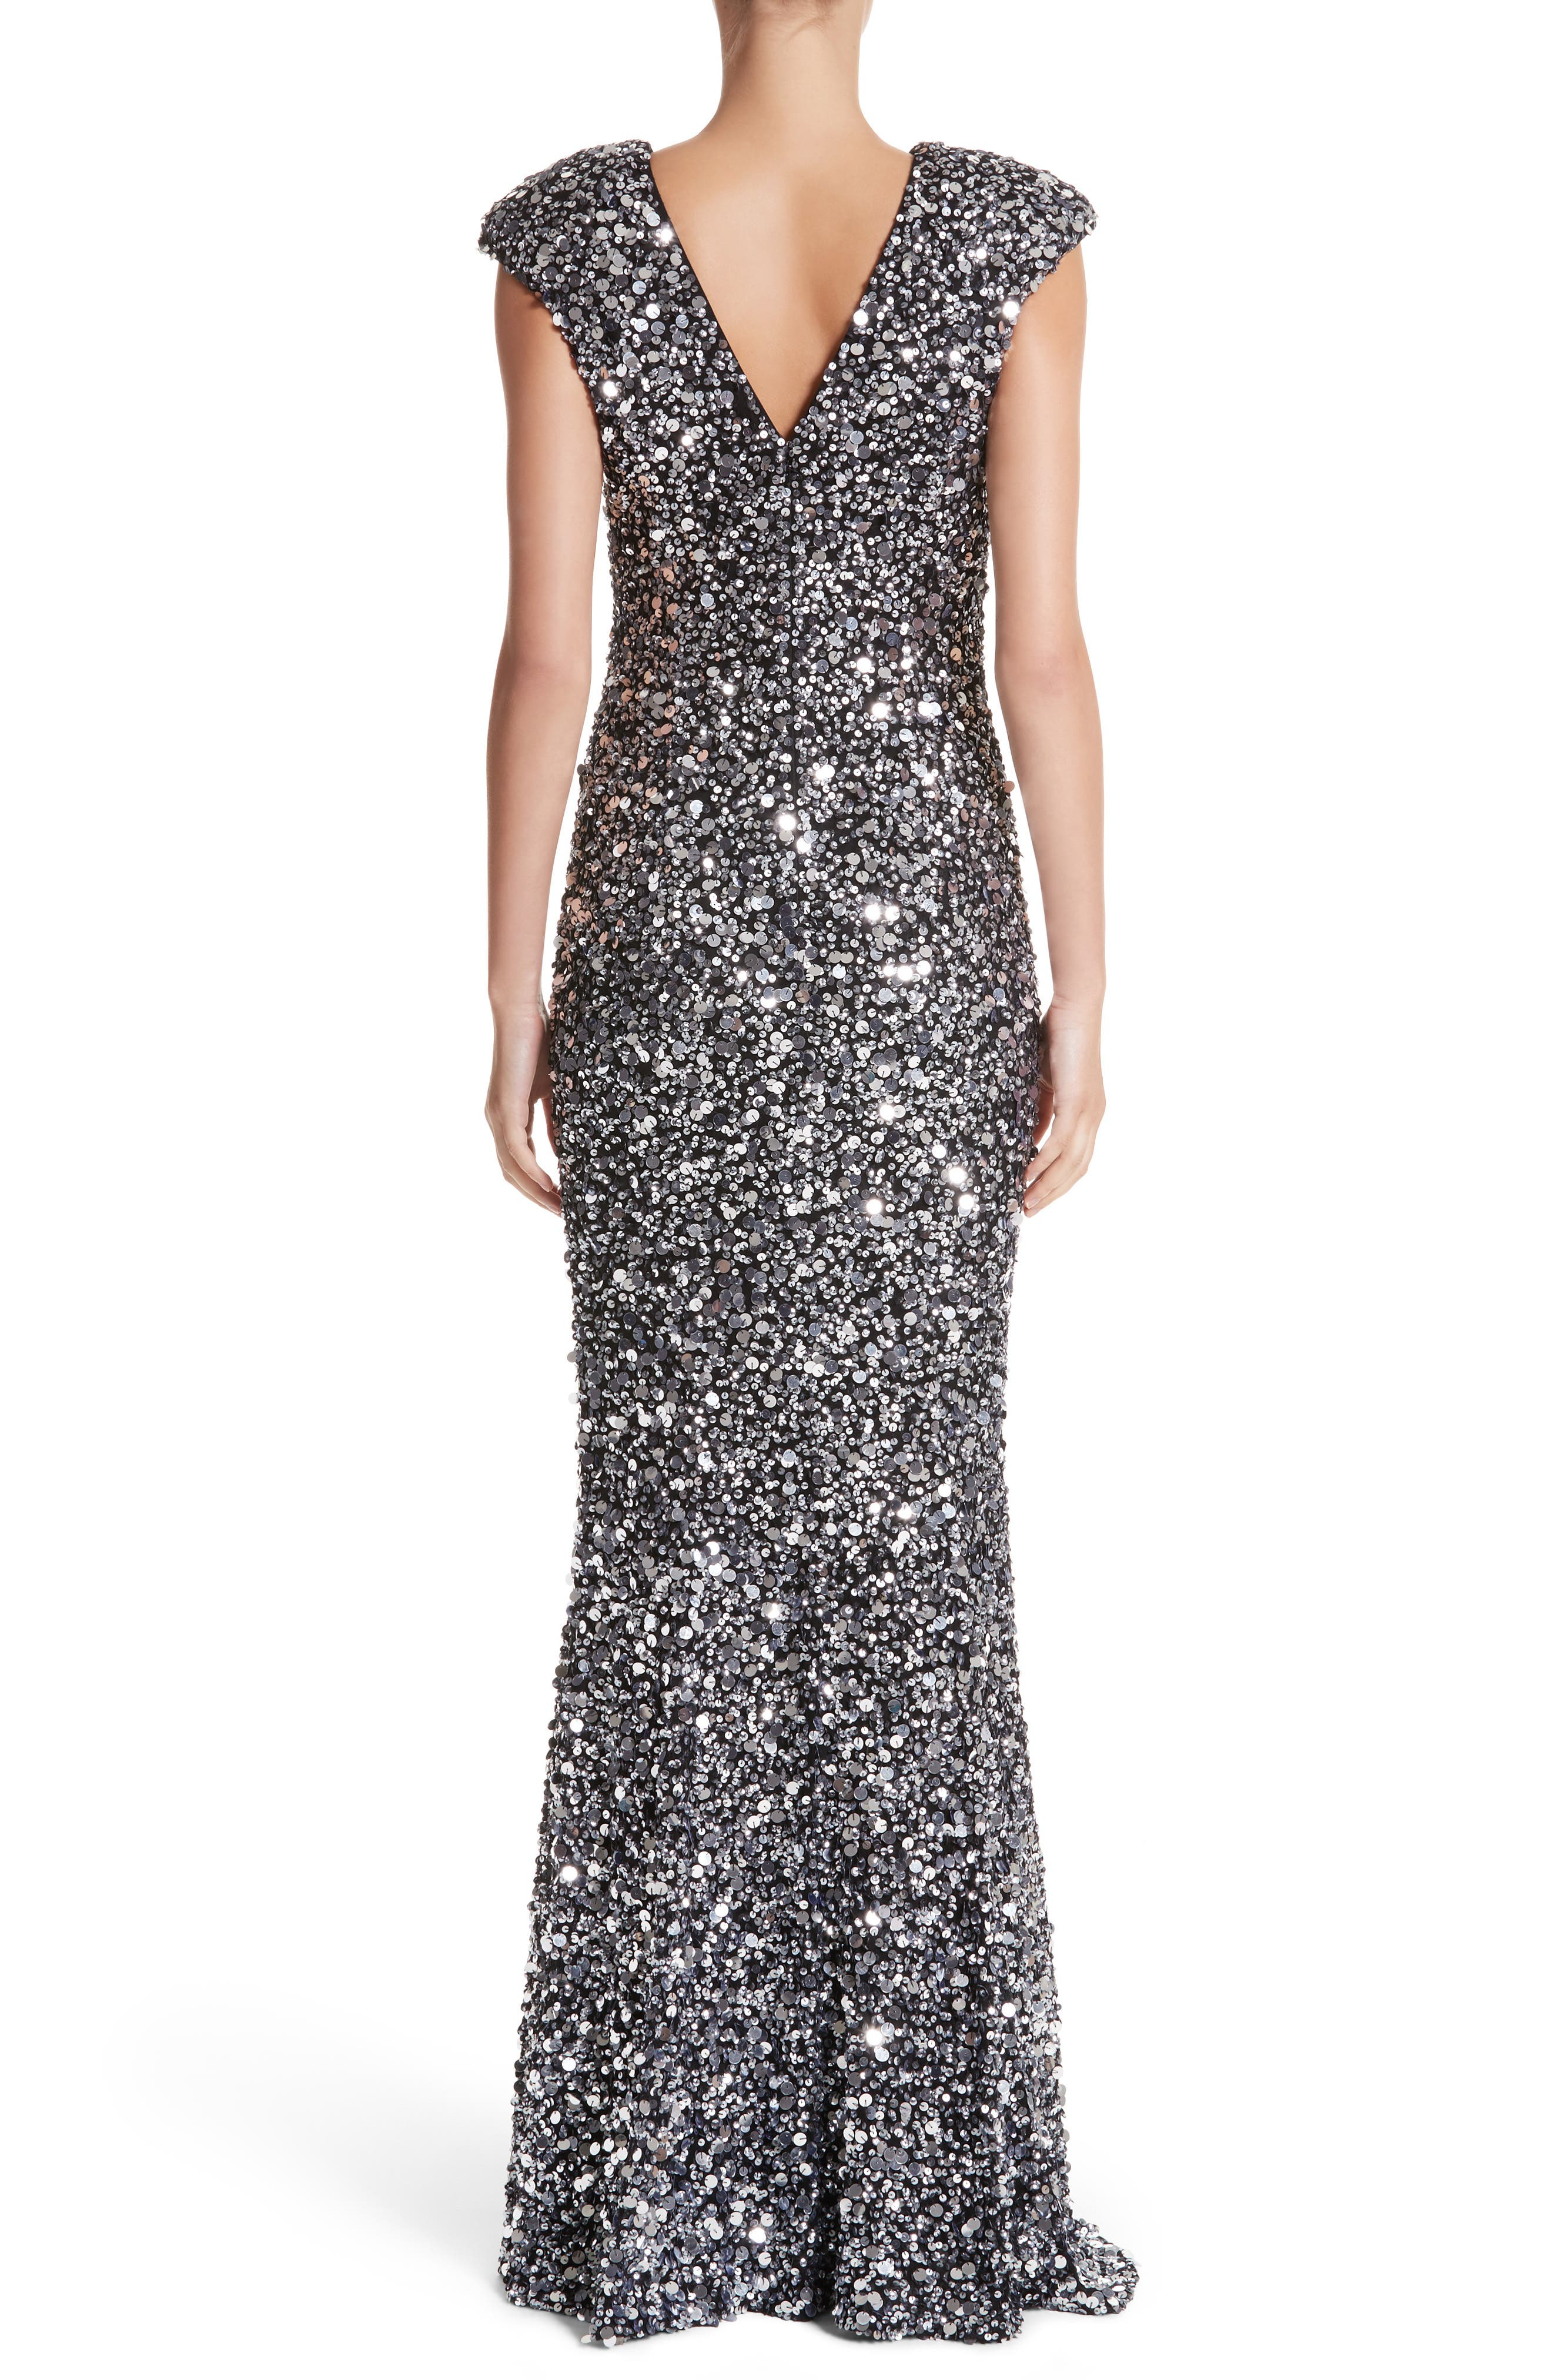 Hand Embellished Sequin Gown,                             Alternate thumbnail 2, color,                             BLACK/ SILVER